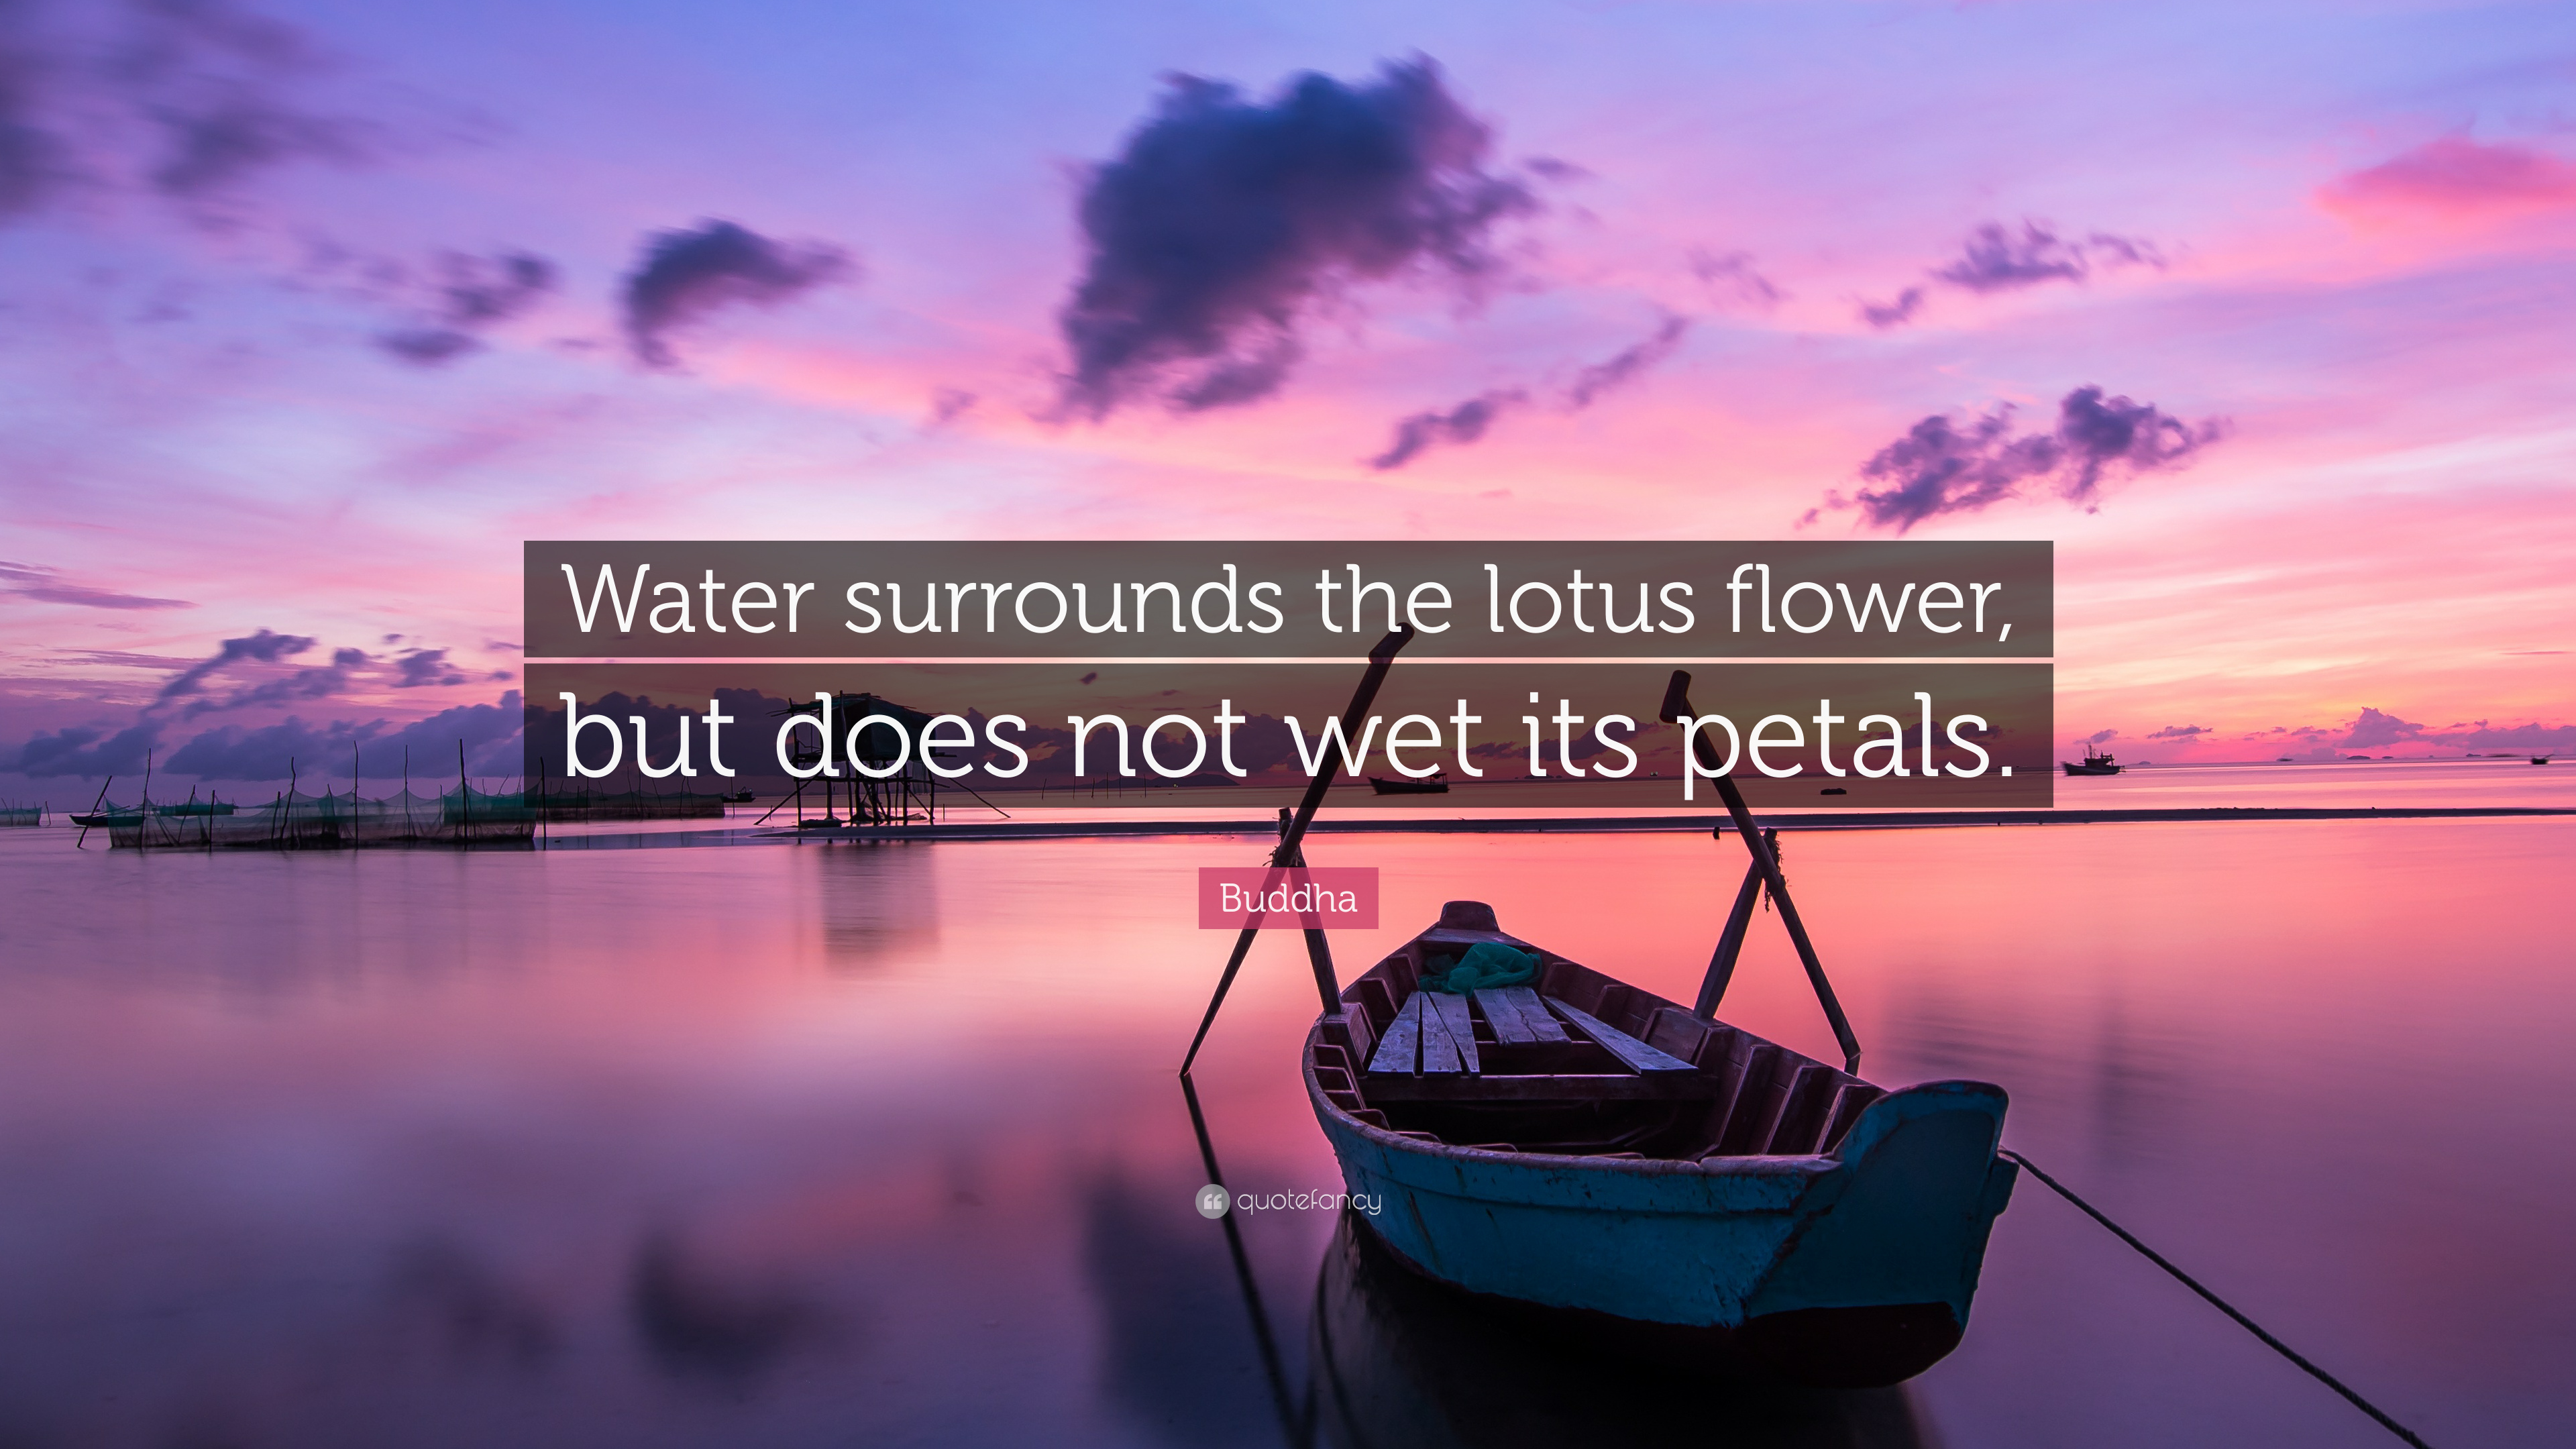 Buddha Quote Water Surrounds The Lotus Flower But Does Not Wet